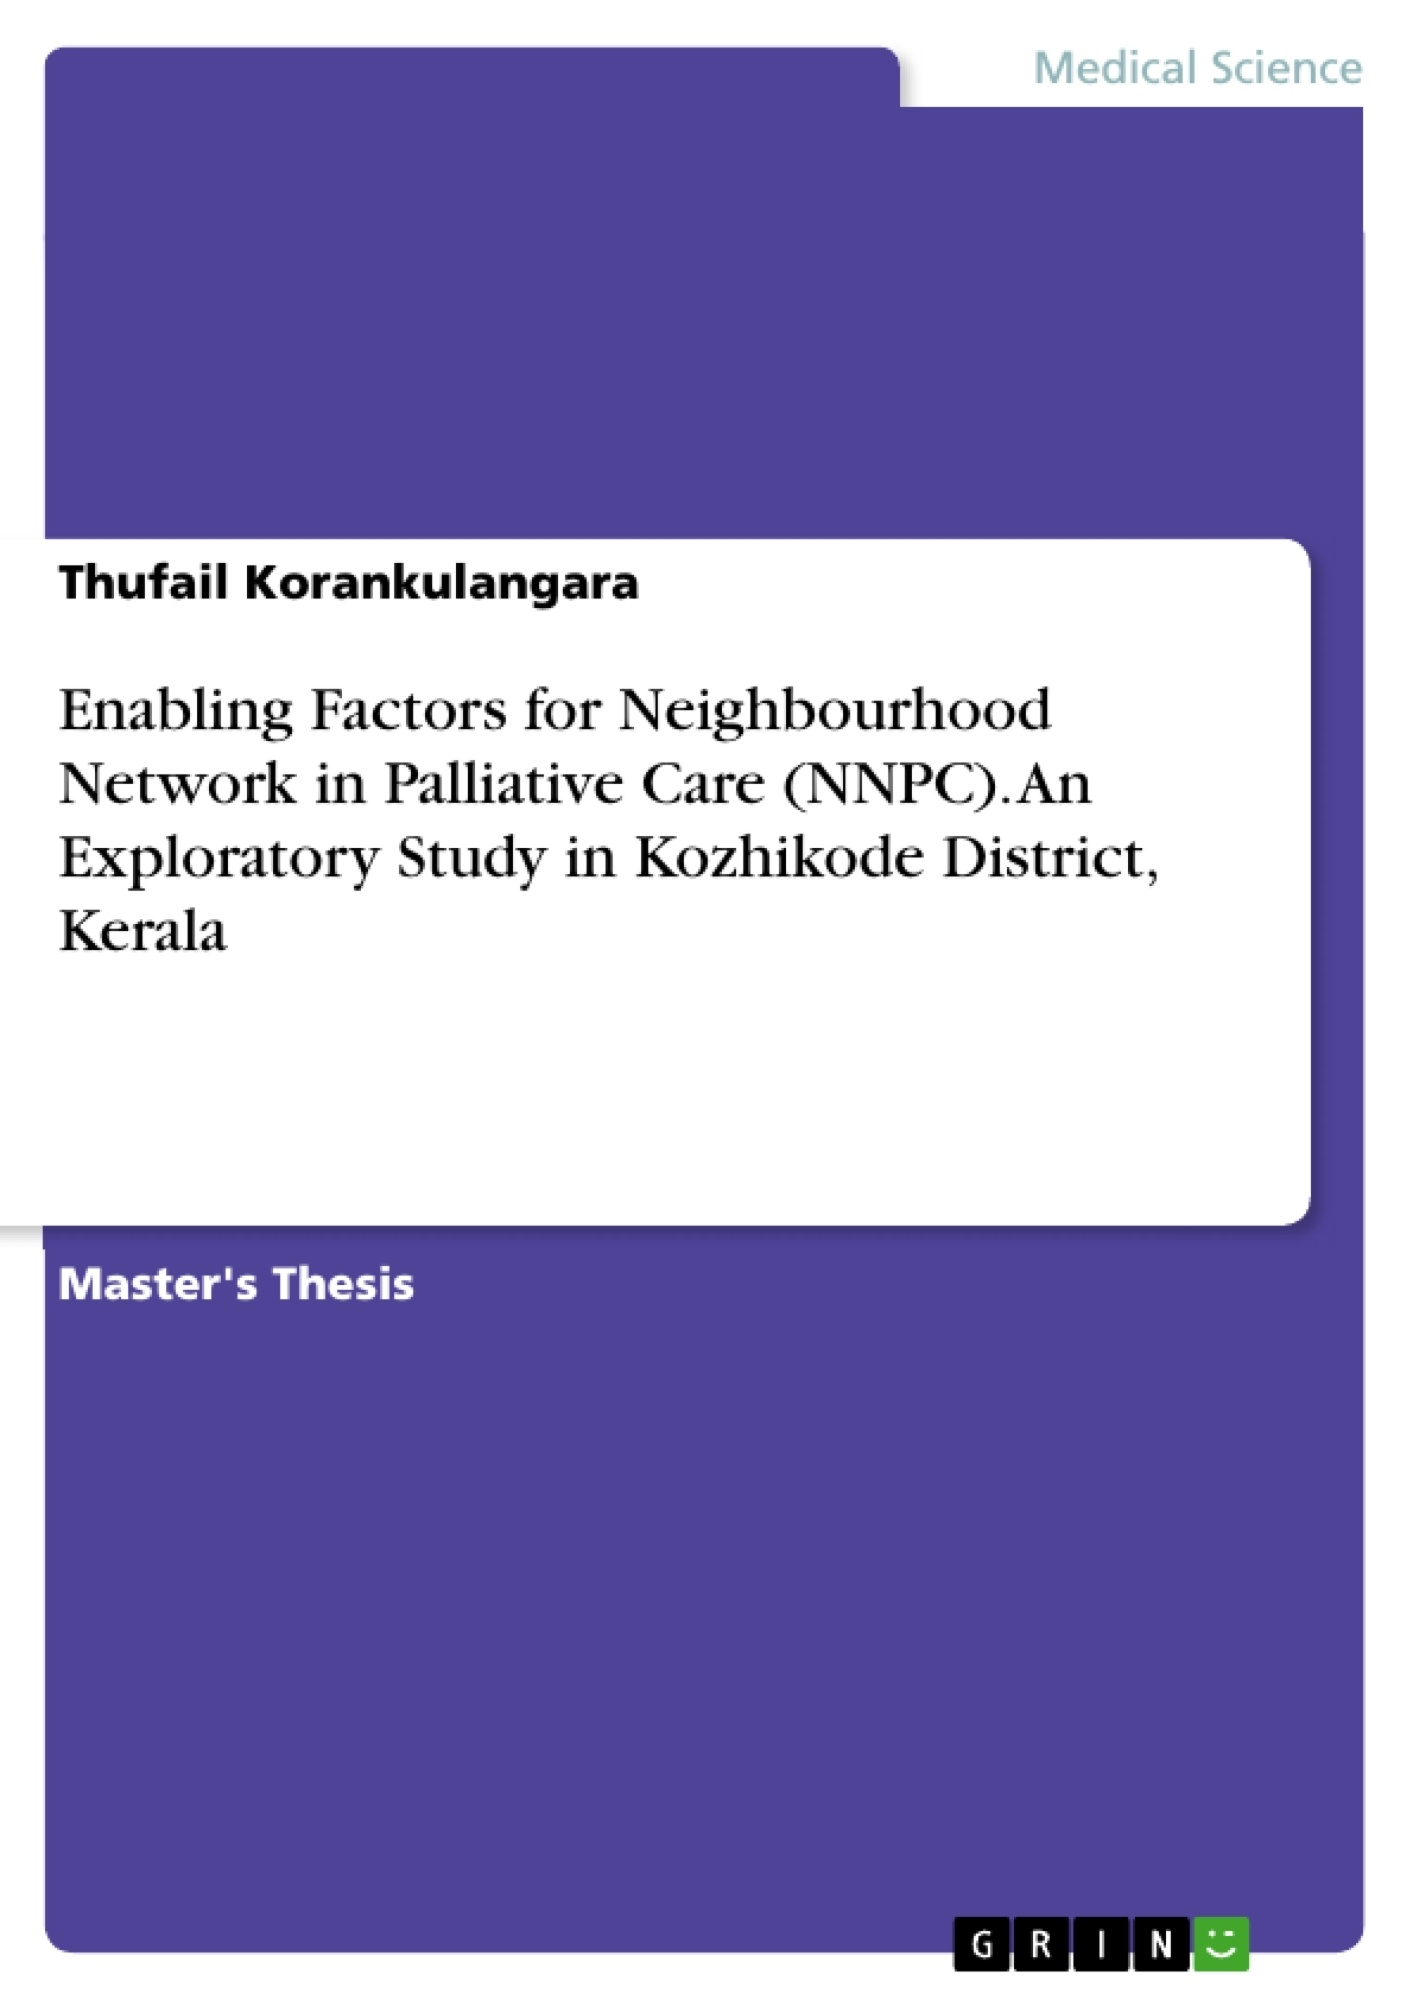 Title: Enabling Factors for Neighbourhood Network in Palliative Care (NNPC). An Exploratory Study in Kozhikode District, Kerala